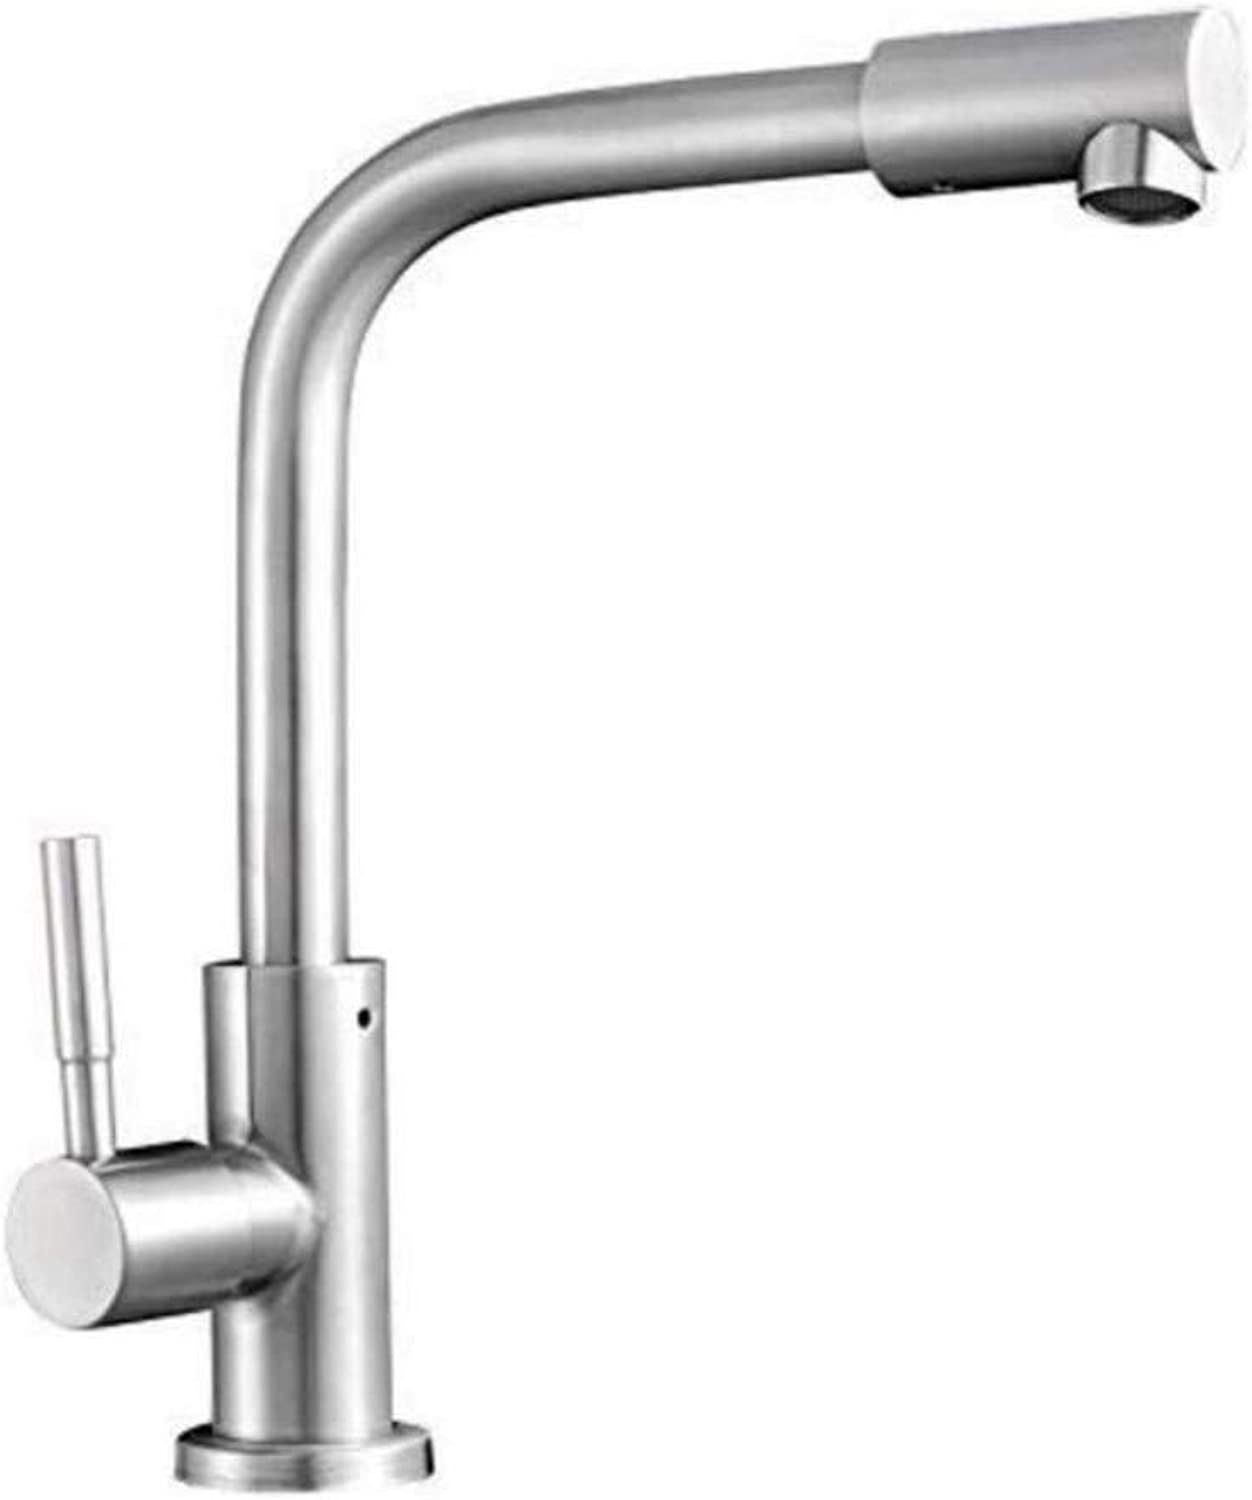 Chrome-Plated Adjustable Temperature-Sensitive Led Faucet Stainless Steel Faucet Single Cold Universal redating Tap